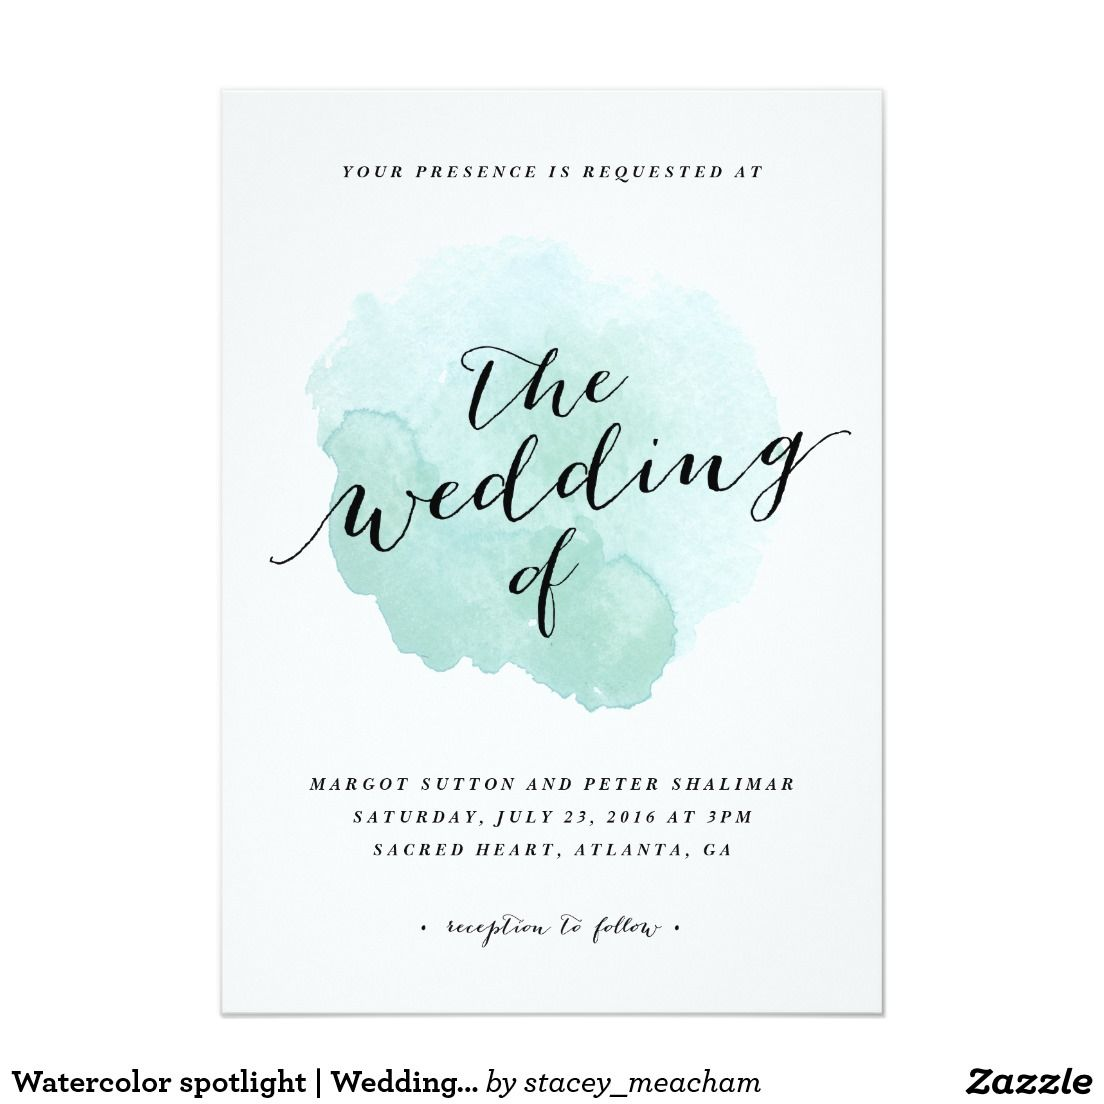 Watercolor Spotlight Wedding Invitation Zazzle Pinterest